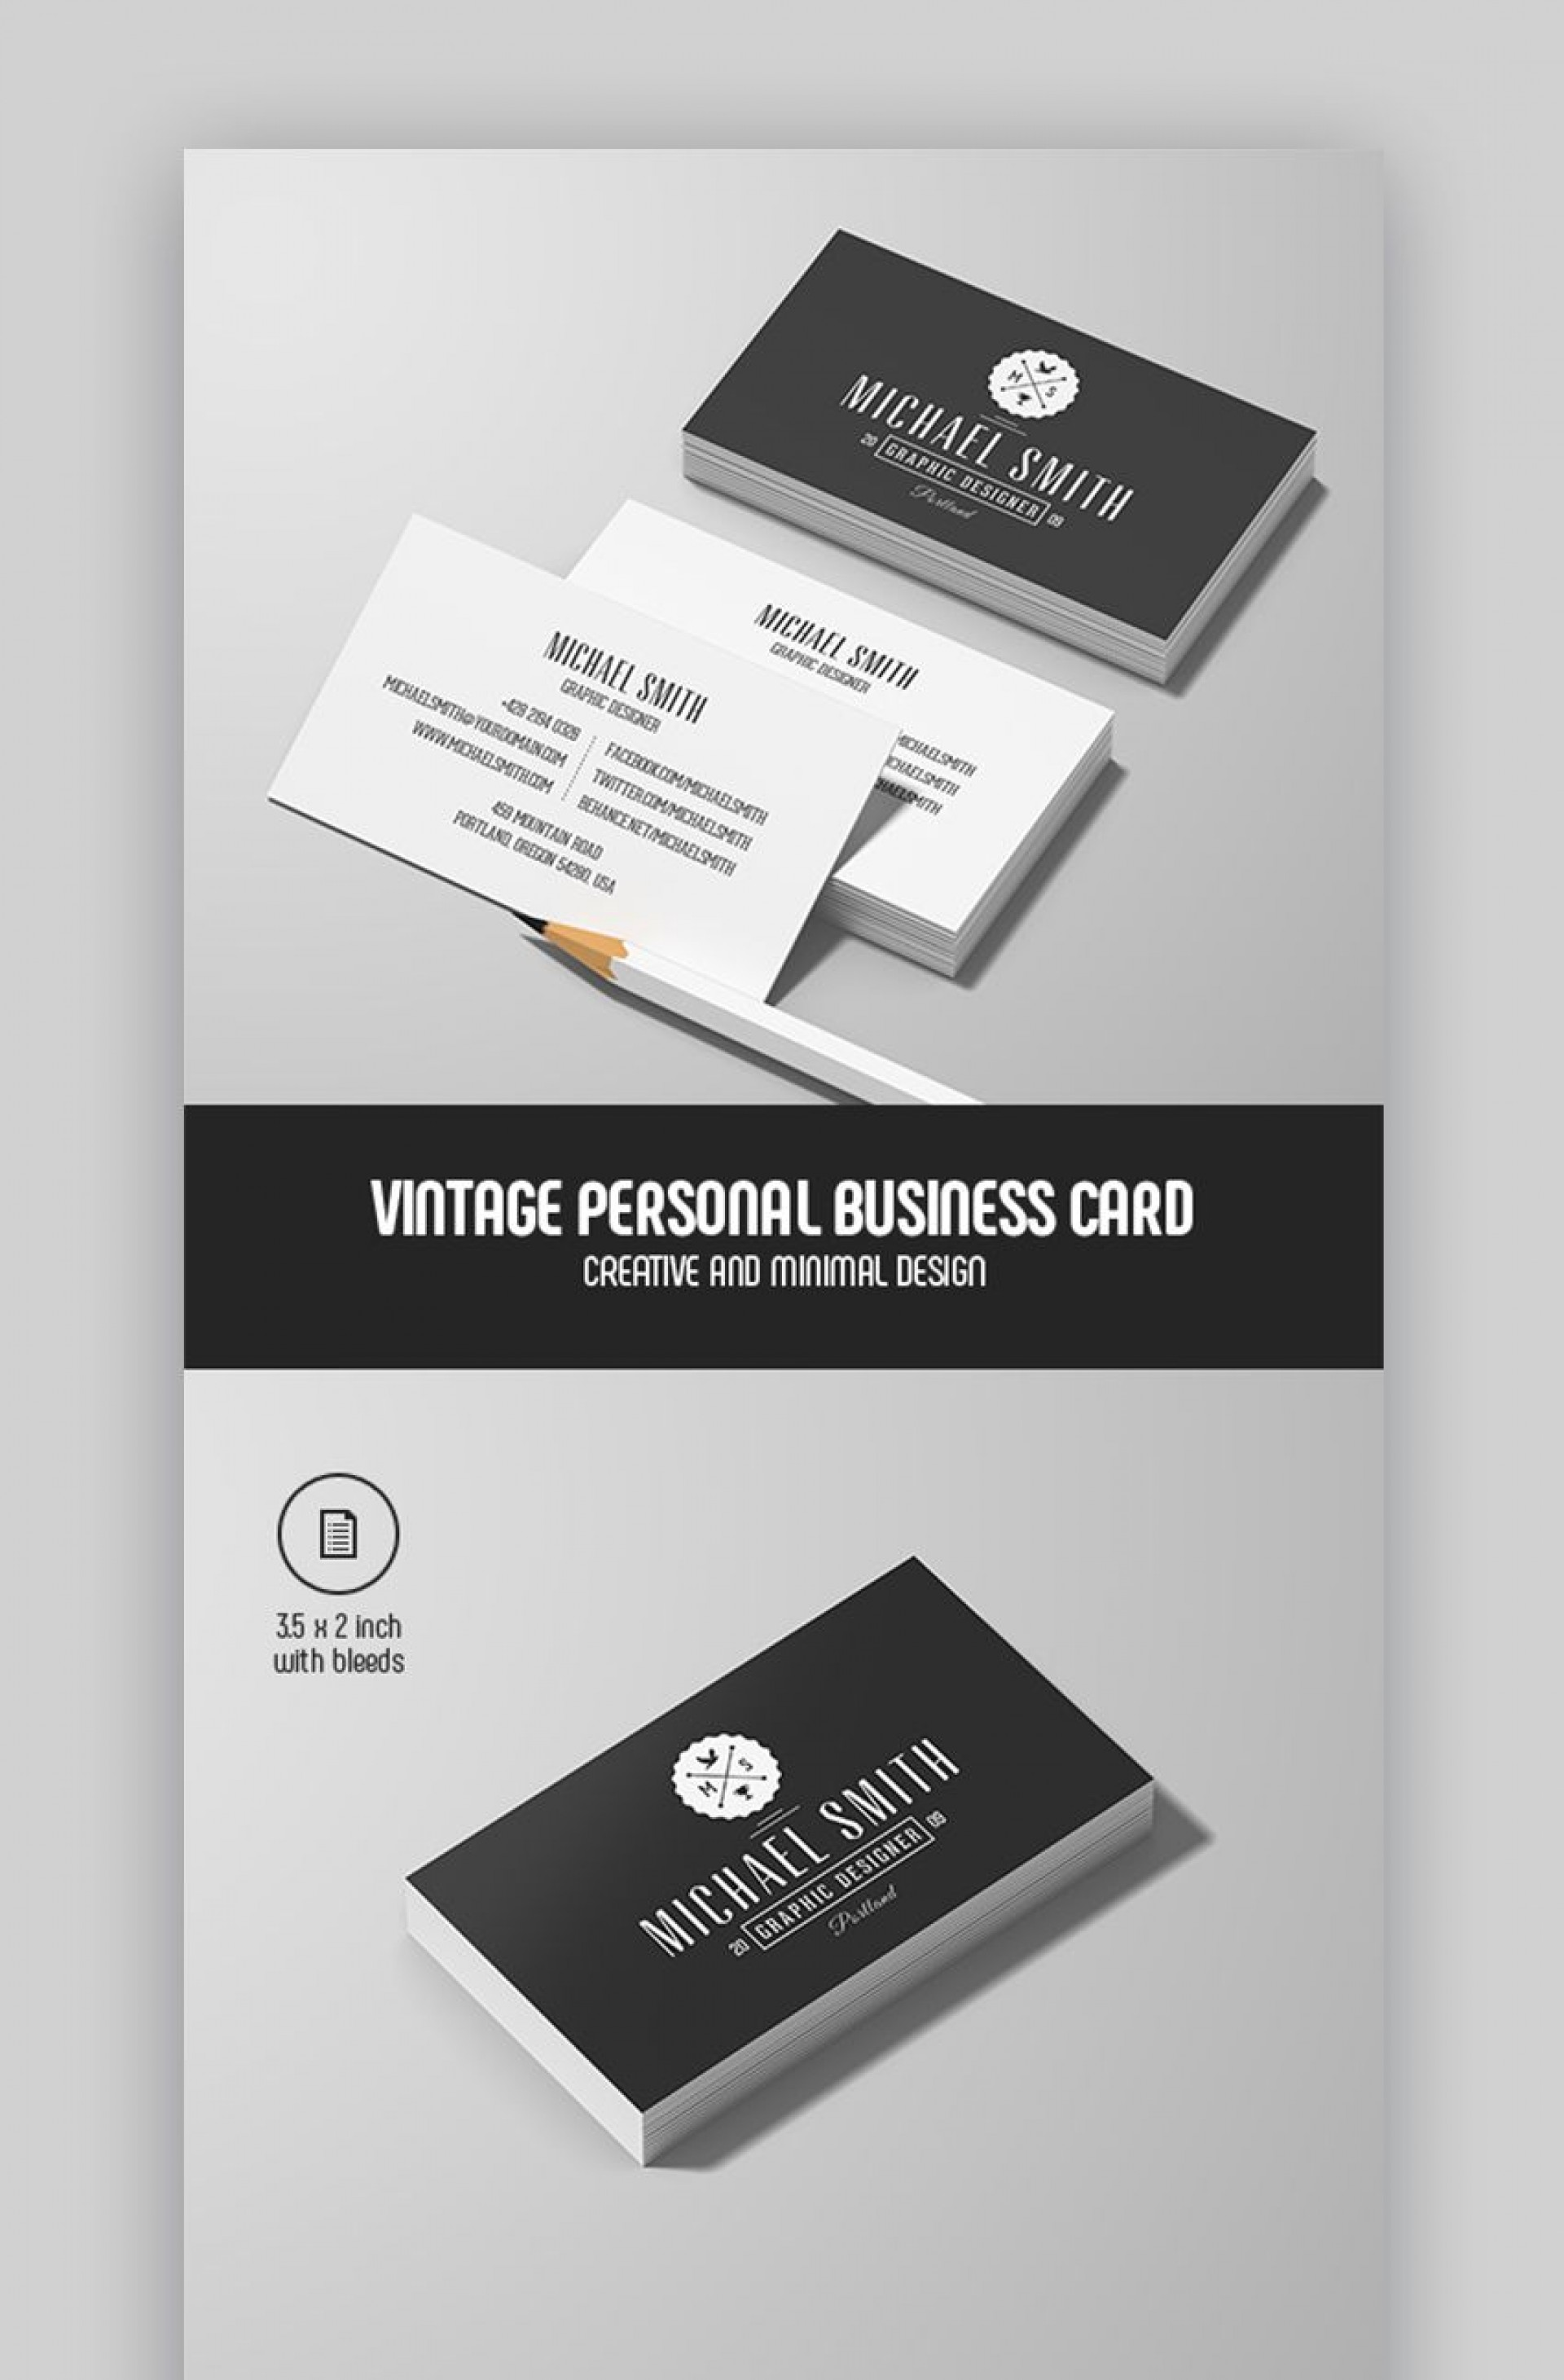 006 Awesome Personal Busines Card Template High Def  Trainer Design Psd Fitnes1920